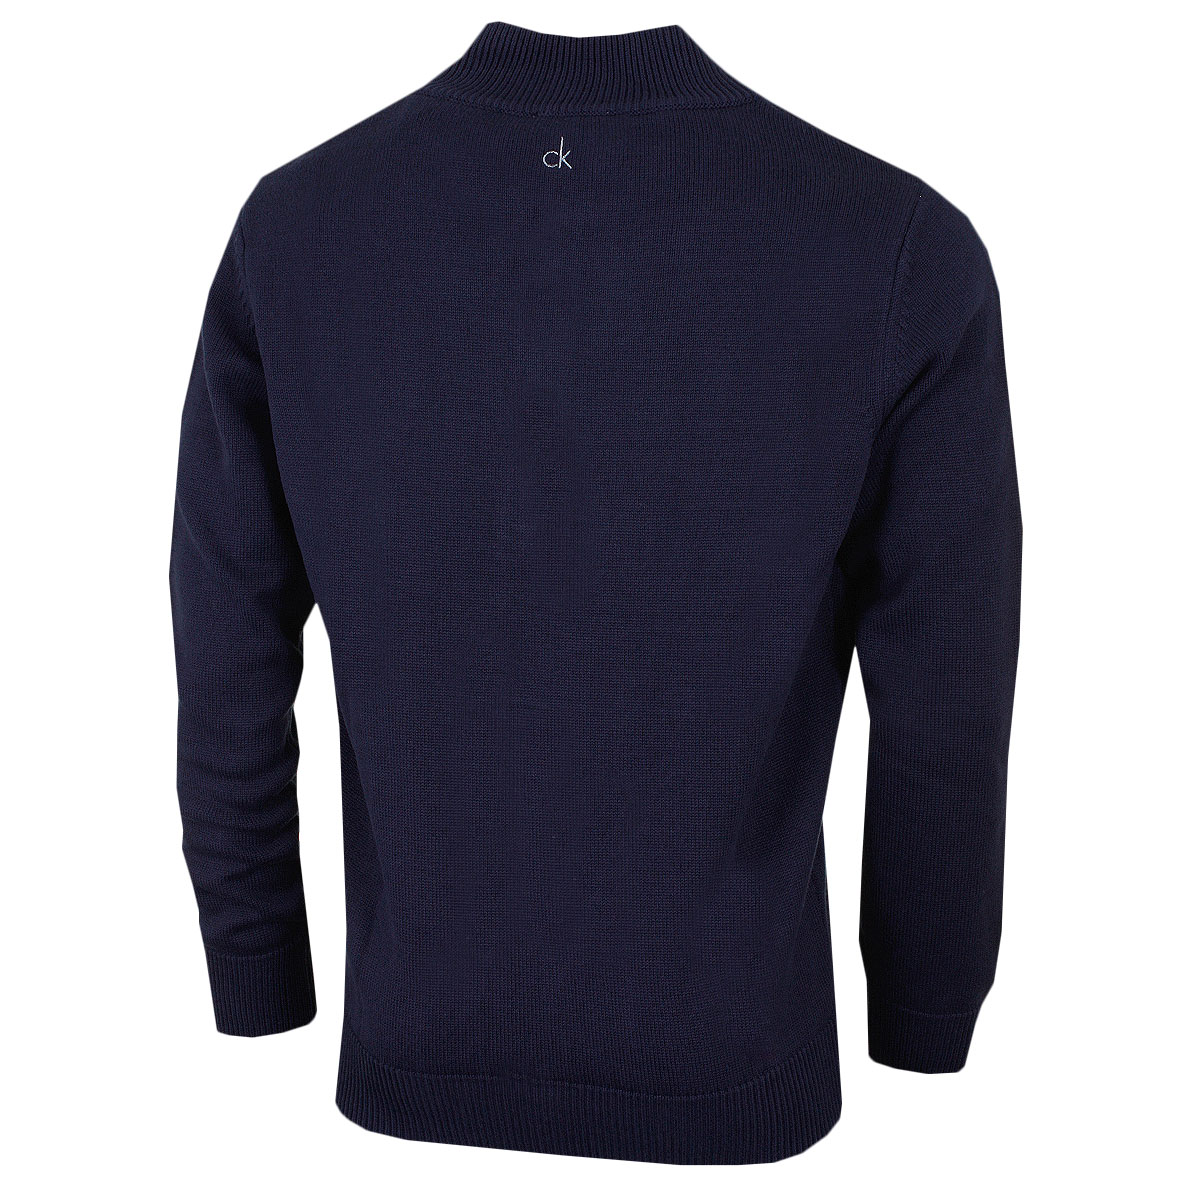 Calvin-Klein-Golf-Mens-2019-Chunky-Cotton-1-2-Zip-Golf-Top-Sweater-37-OFF-RRP thumbnail 47